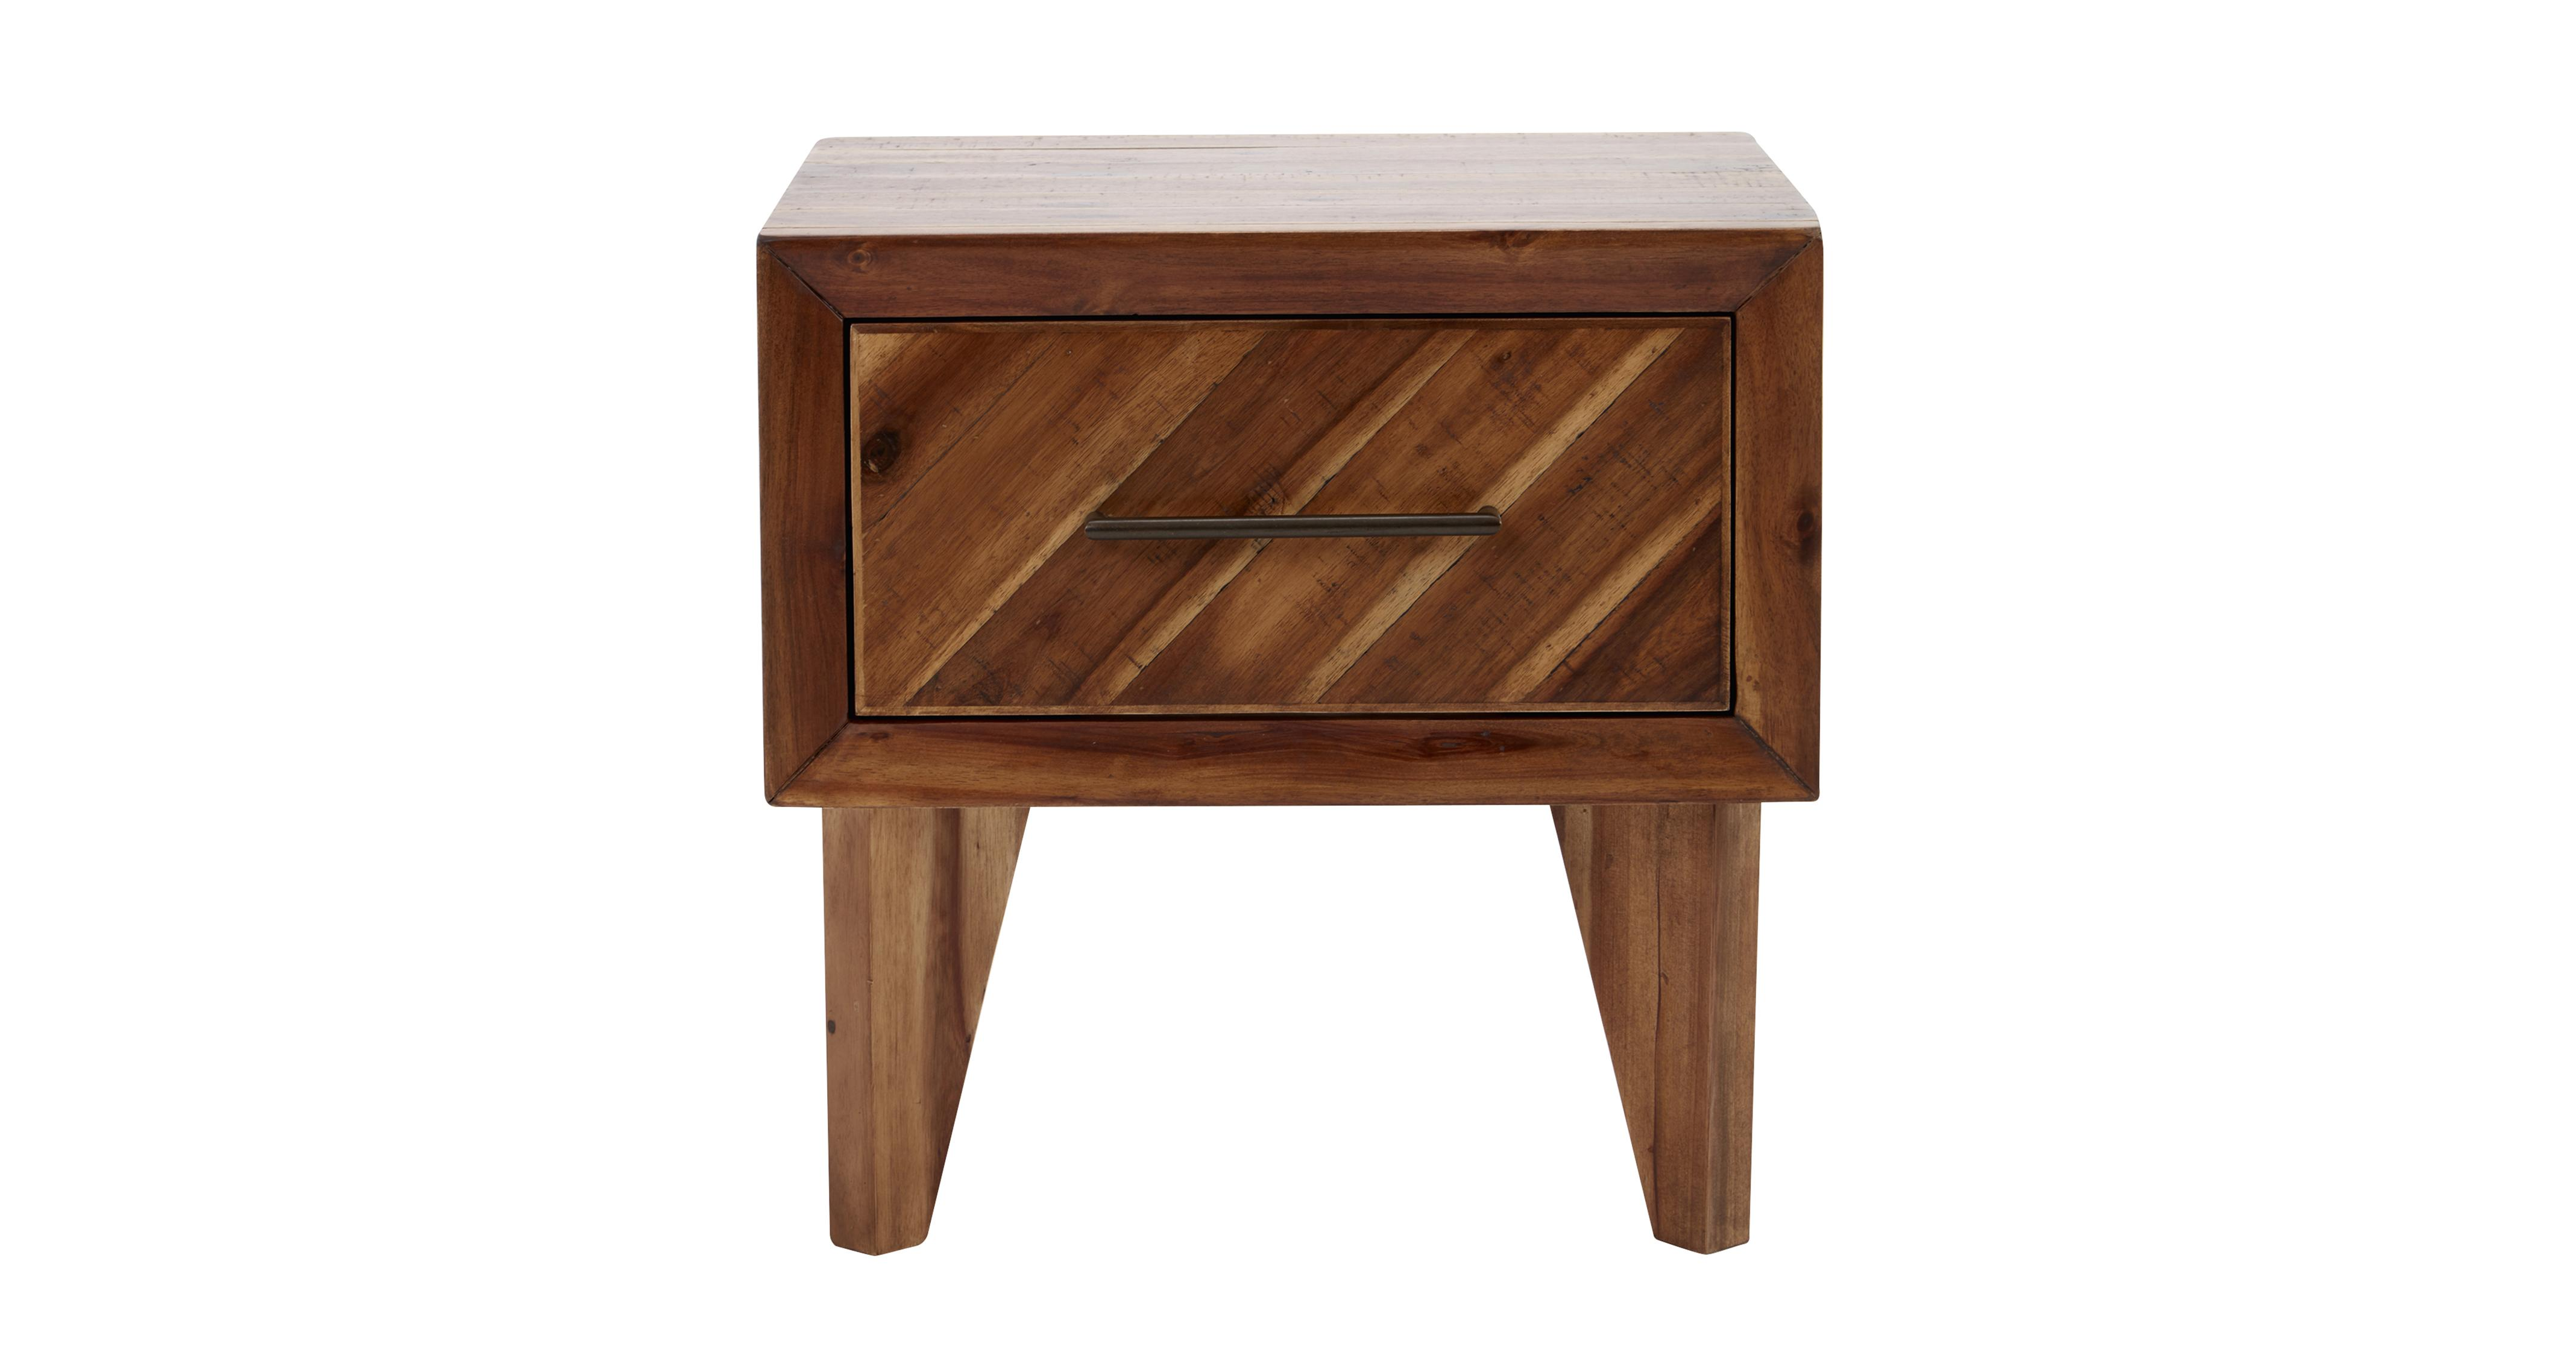 Leyton storage lamp table dfs for Lamp table dfs